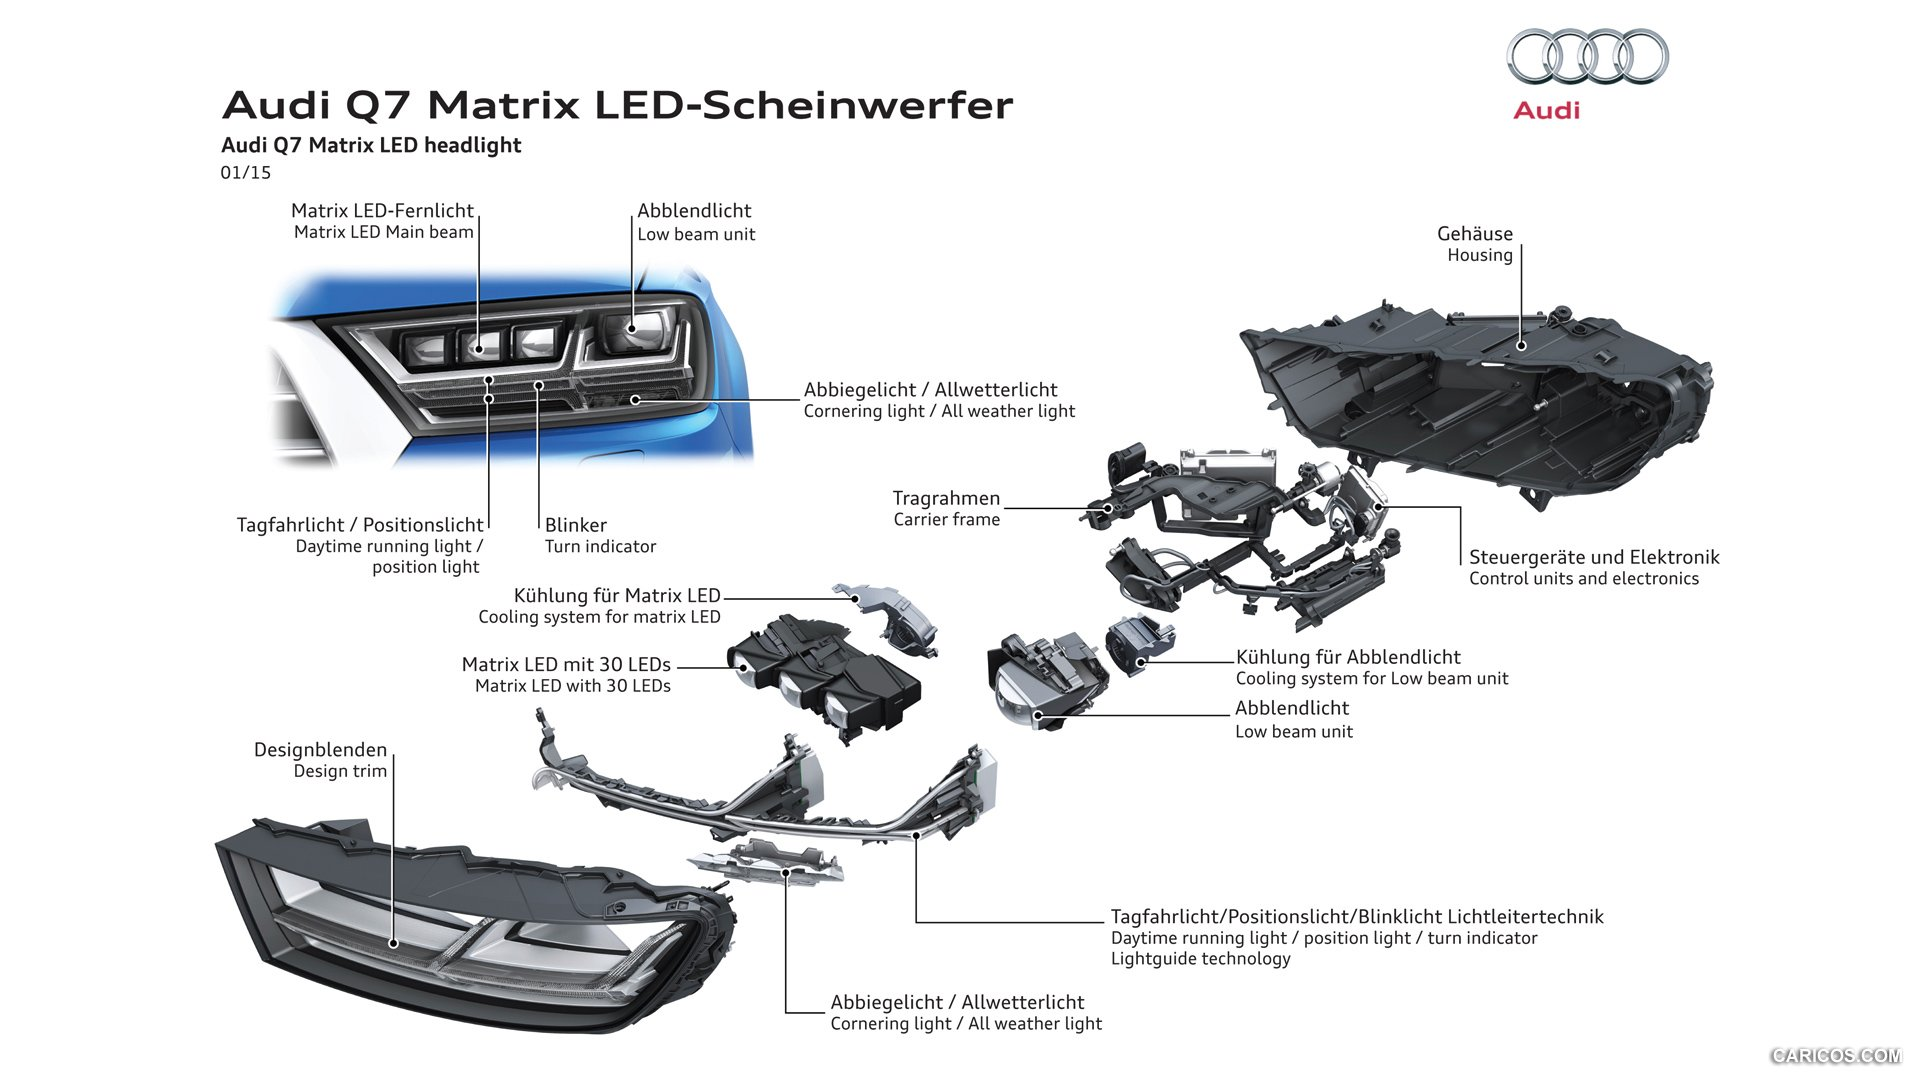 Die Groessten Automarken Mercedes Benz pic4714 besides Led Vs Matrix Lights in addition Autos furthermore 2005 Ford E350 Fuse Box Diagram further Peugeot Sport Logo 4. on mercedes sport